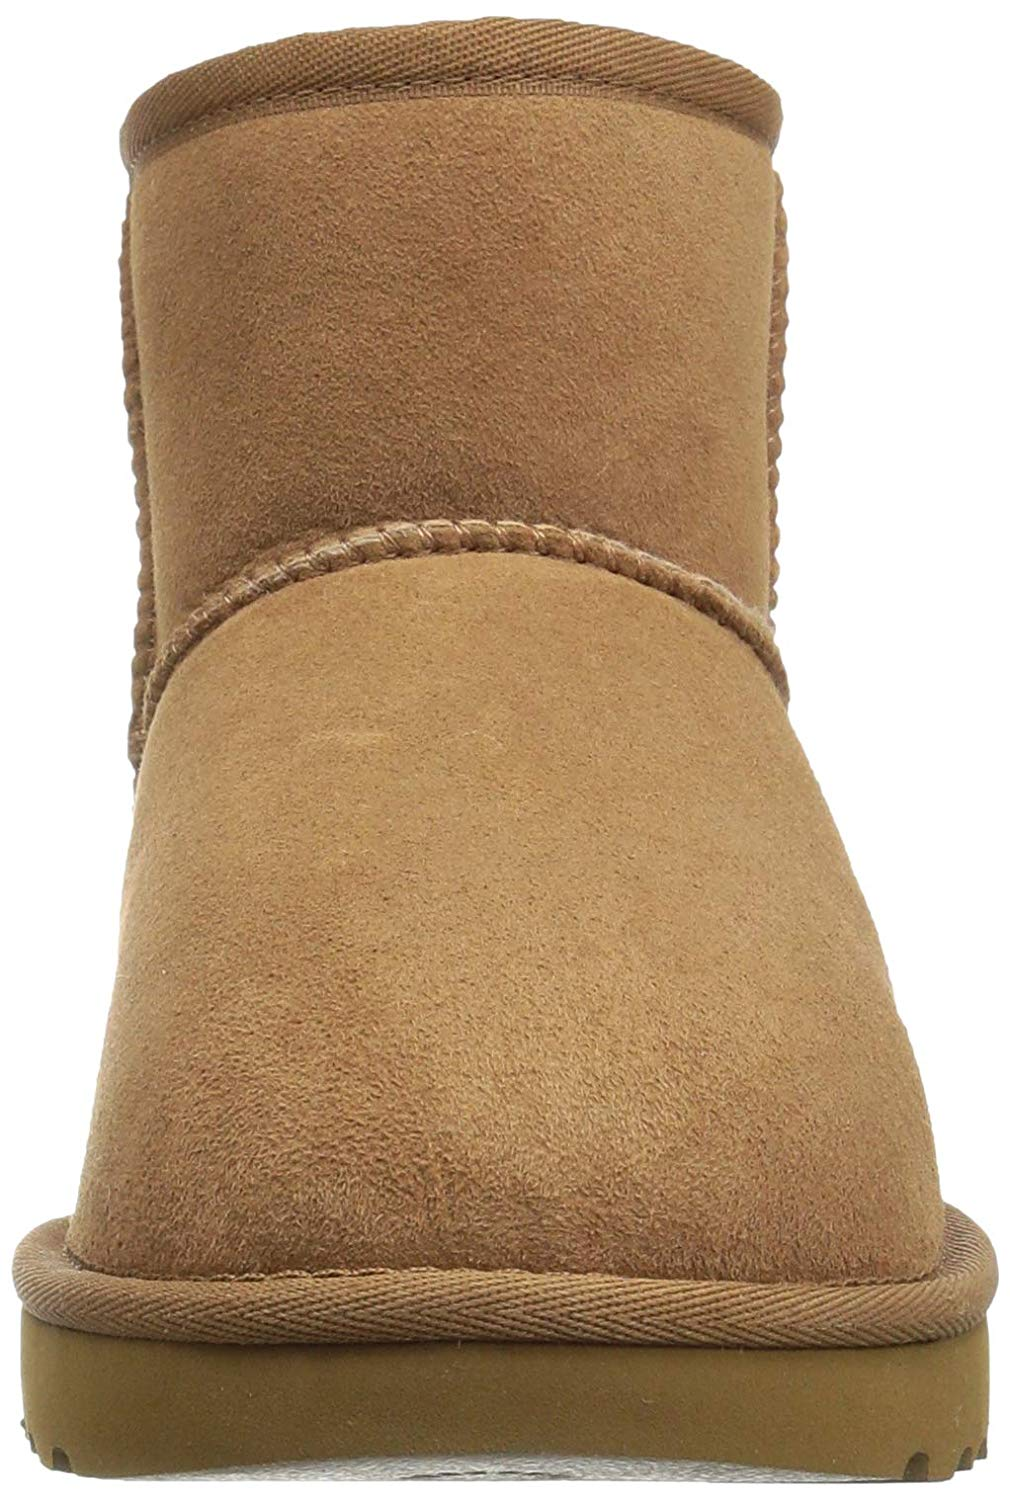 Ugg Classic couleur beige 37